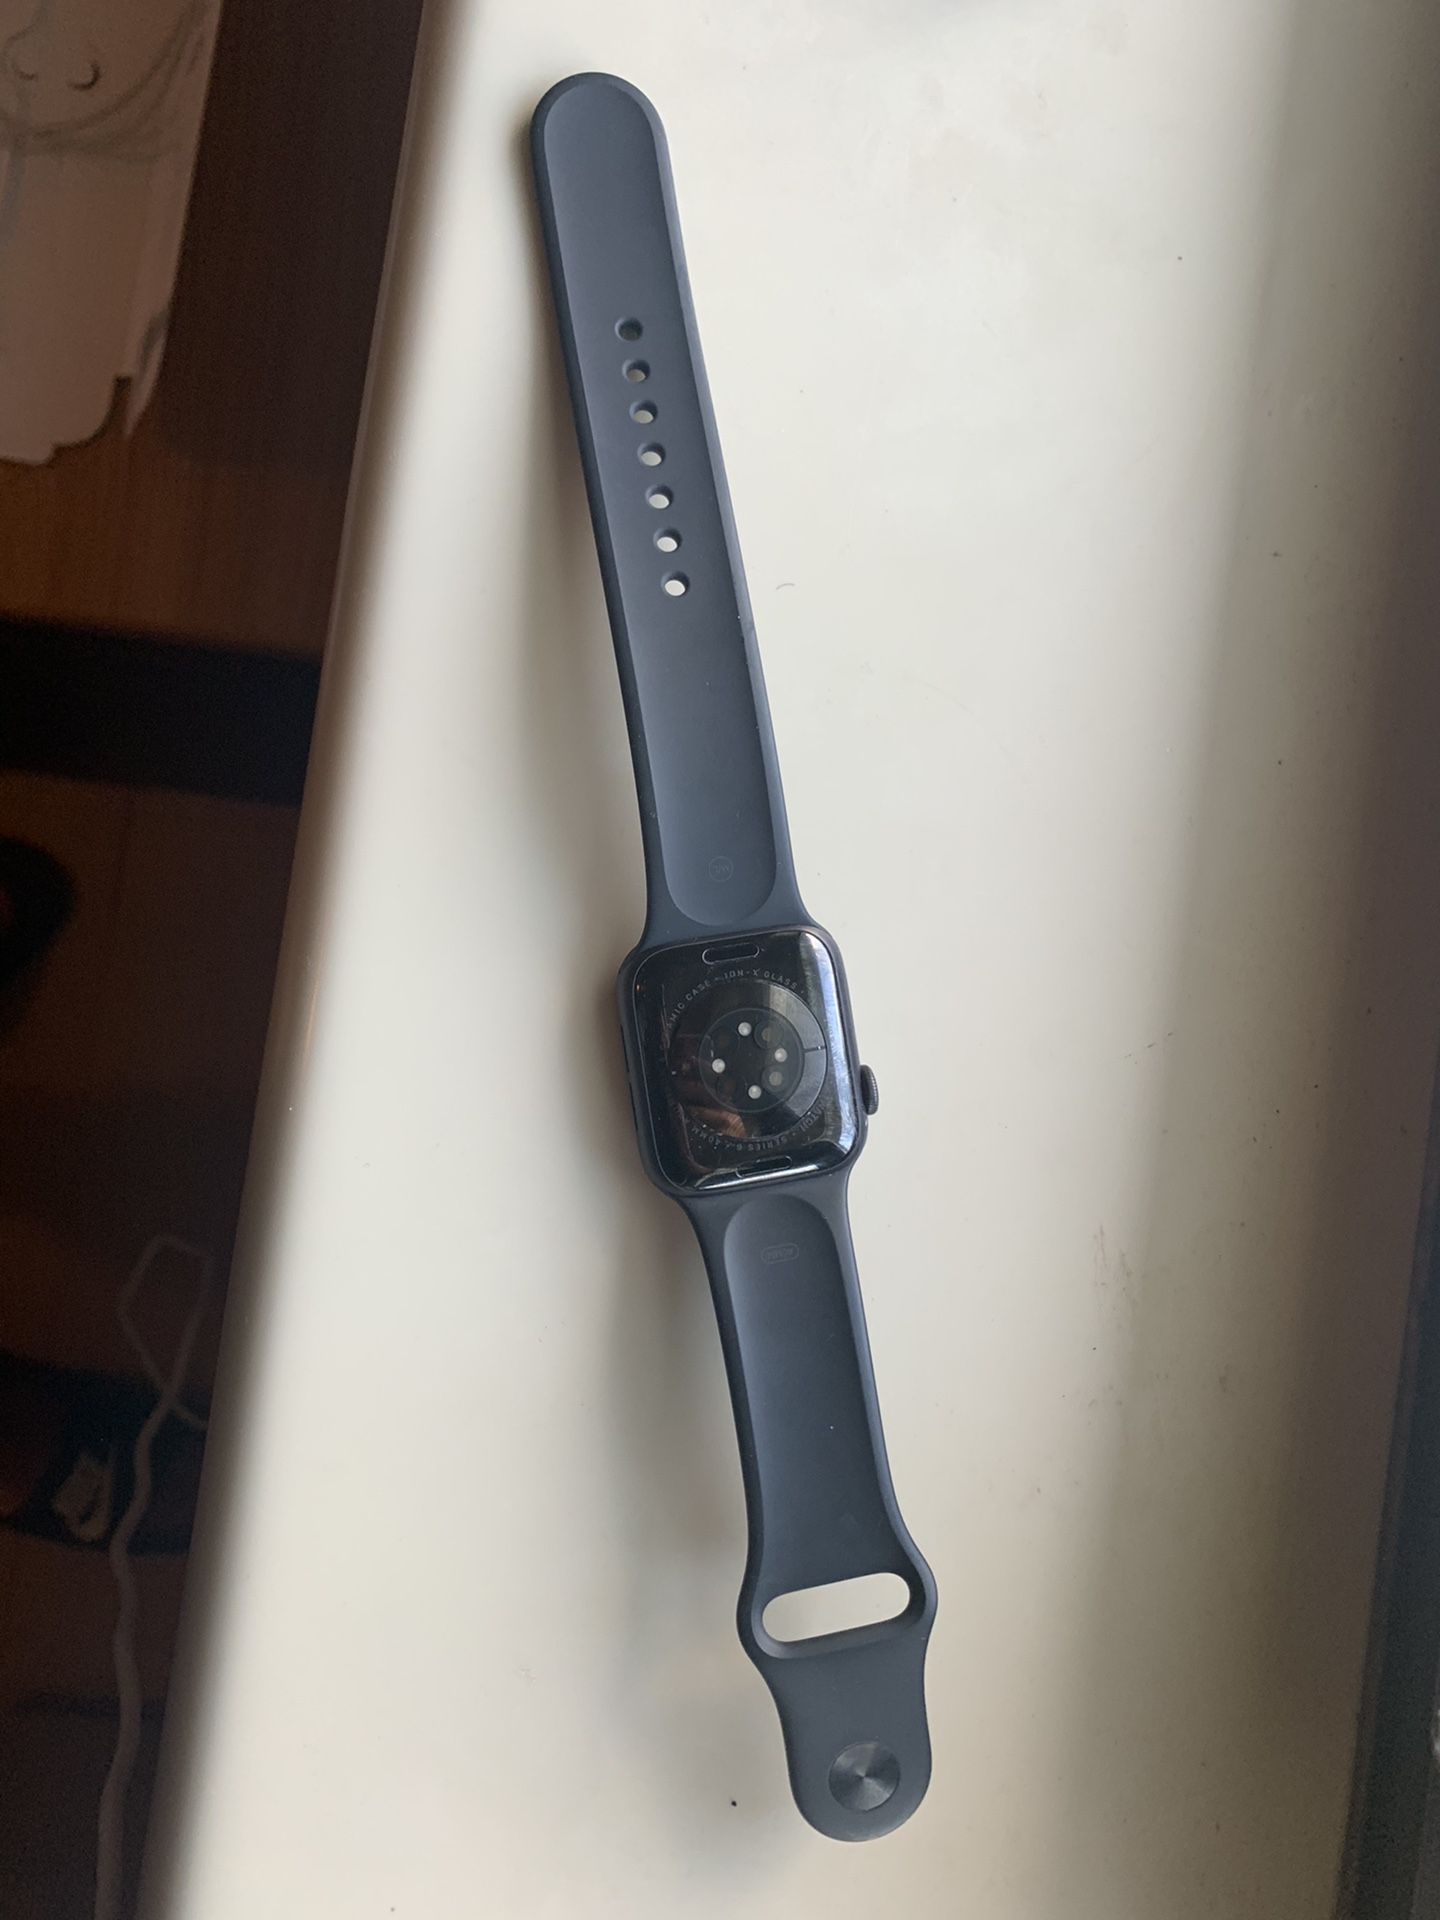 Appple Watch Serious 6 Space Gray